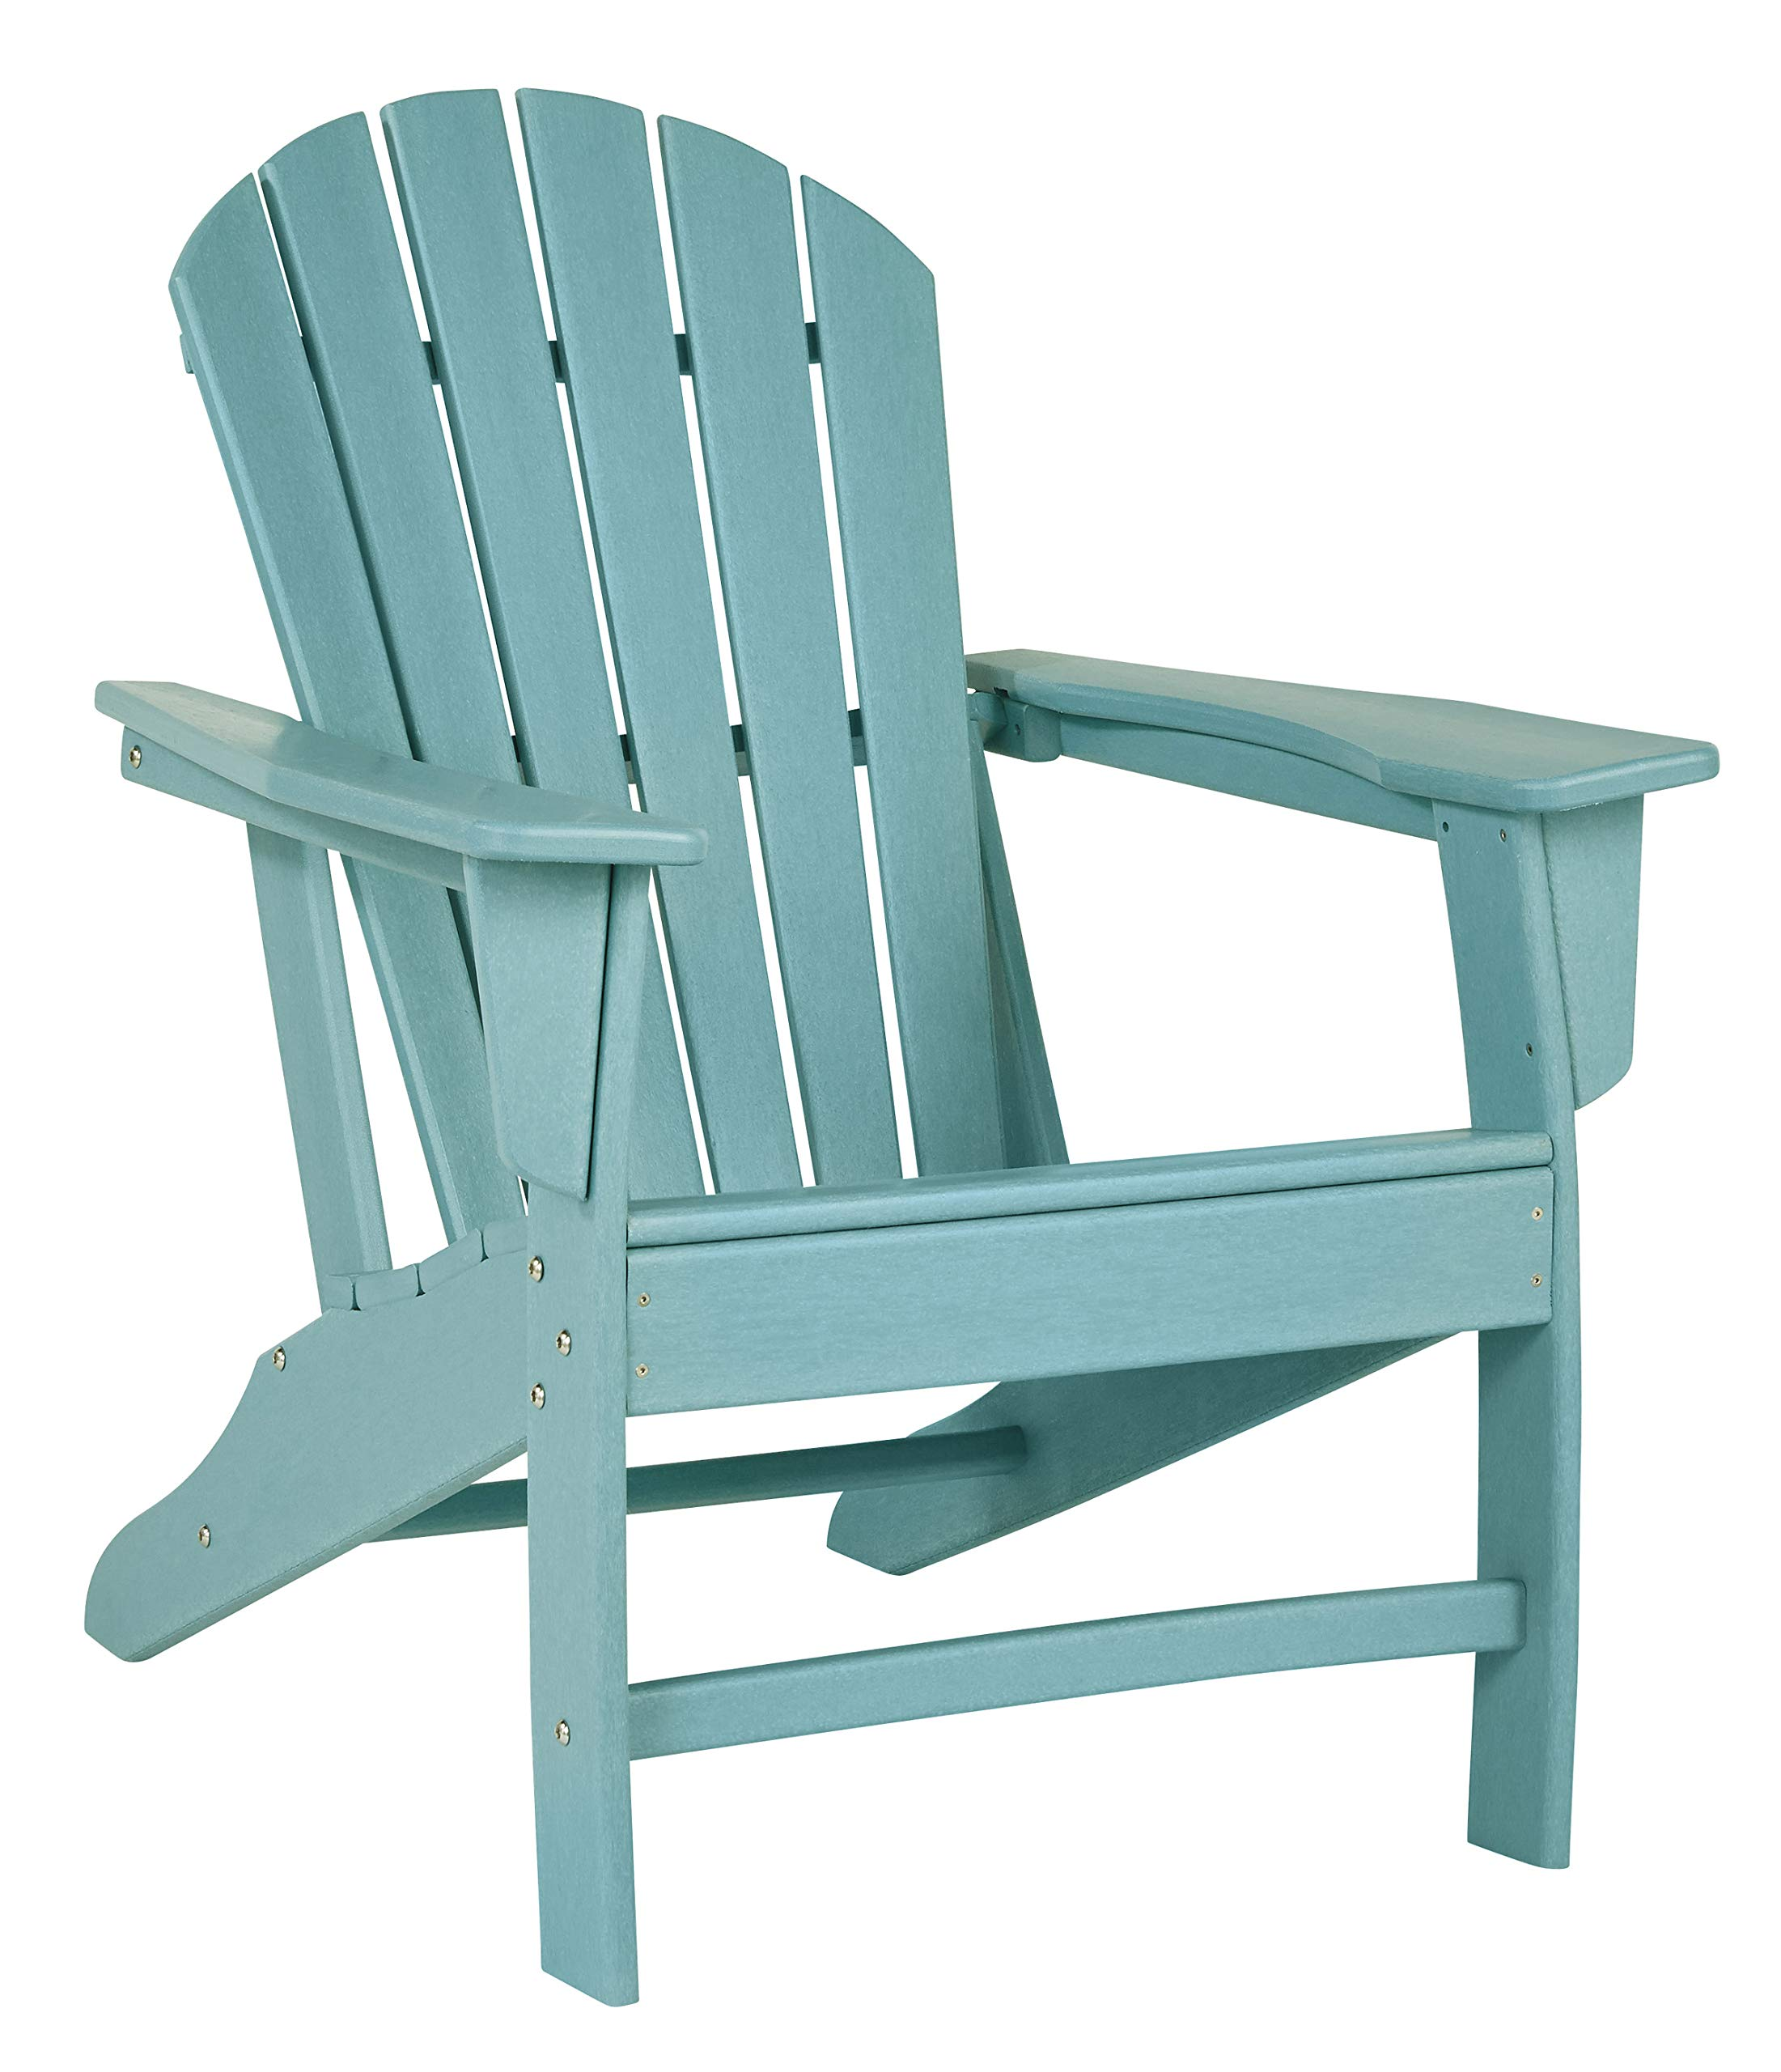 Ashley Furniture Signature Design - Sundown Treasure Outdoor Adirondack Chair - Hard Plastic - Slat Top - Turquoise by Signature Design by Ashley